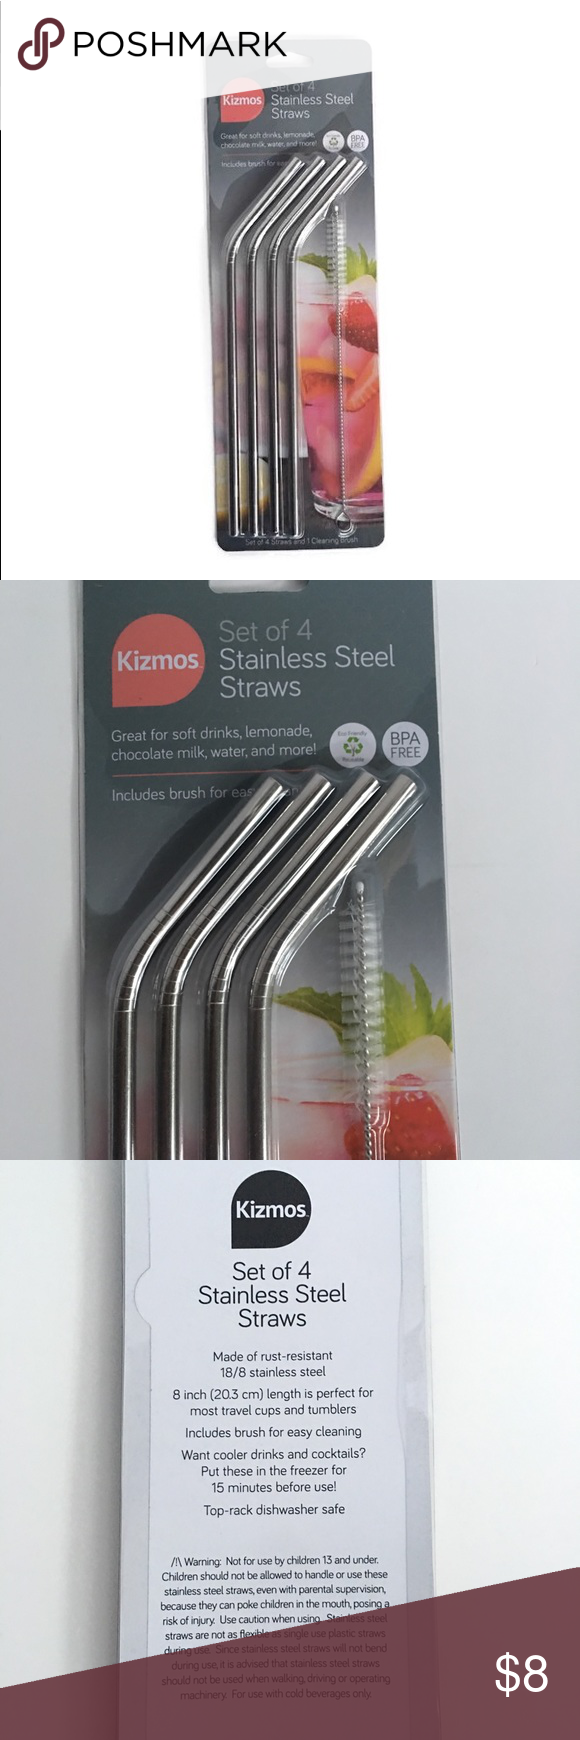 Kizmos 4 Set reusable straw  1 cleaning brush Reusable straws protect your teeth And prevent discoloration from dark colored drinks like soda coffee wine that stain and e...